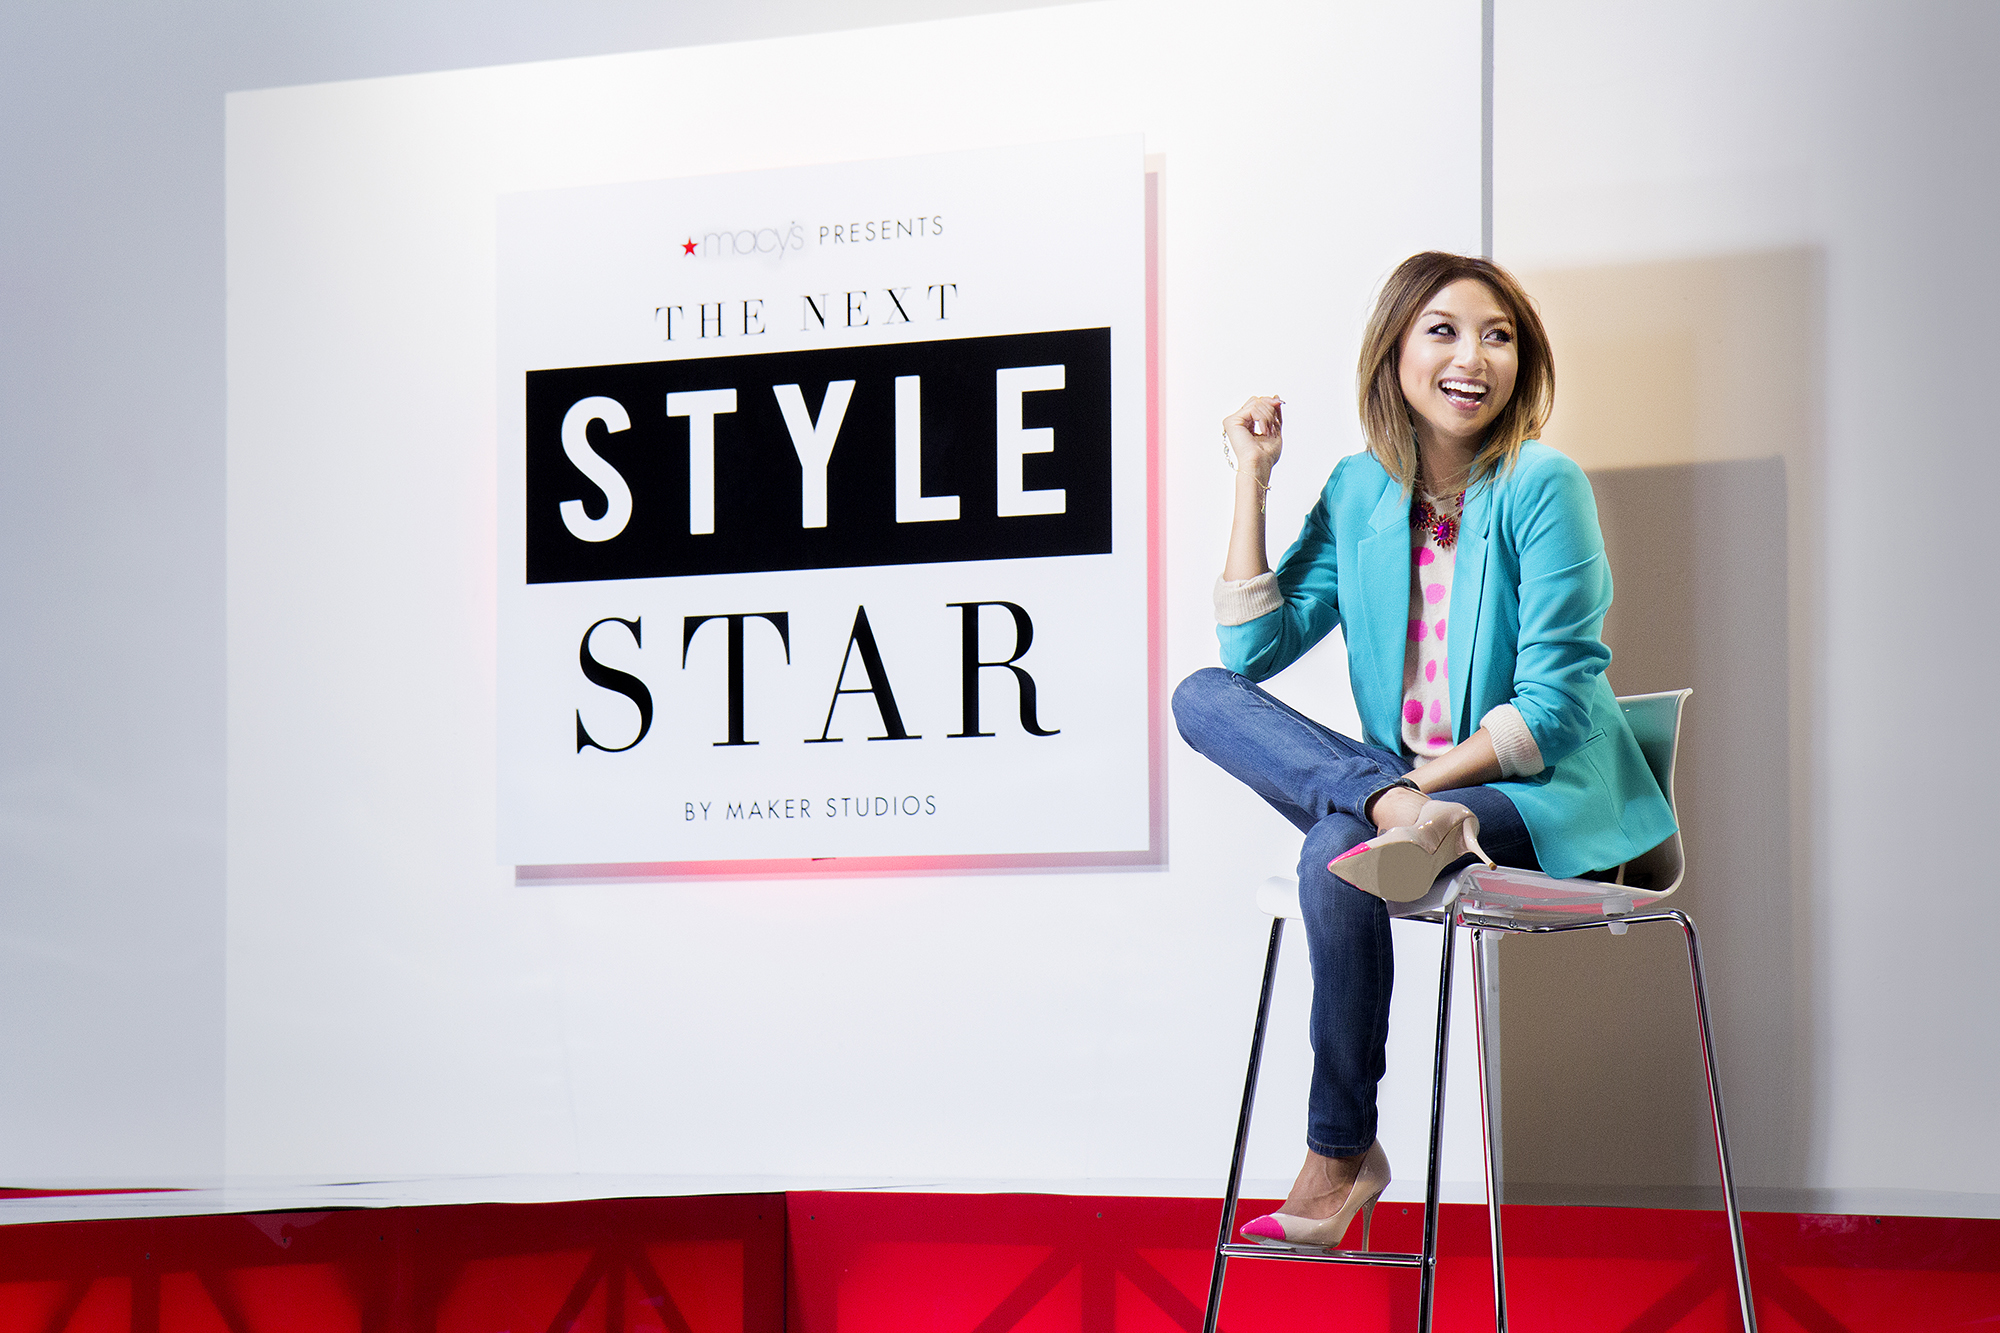 Macy's presents The Next Style Star by Maker Studios, premiering April 3 on The Platform and macys.com, with host Jeannie Mai (Photo: Business Wire)